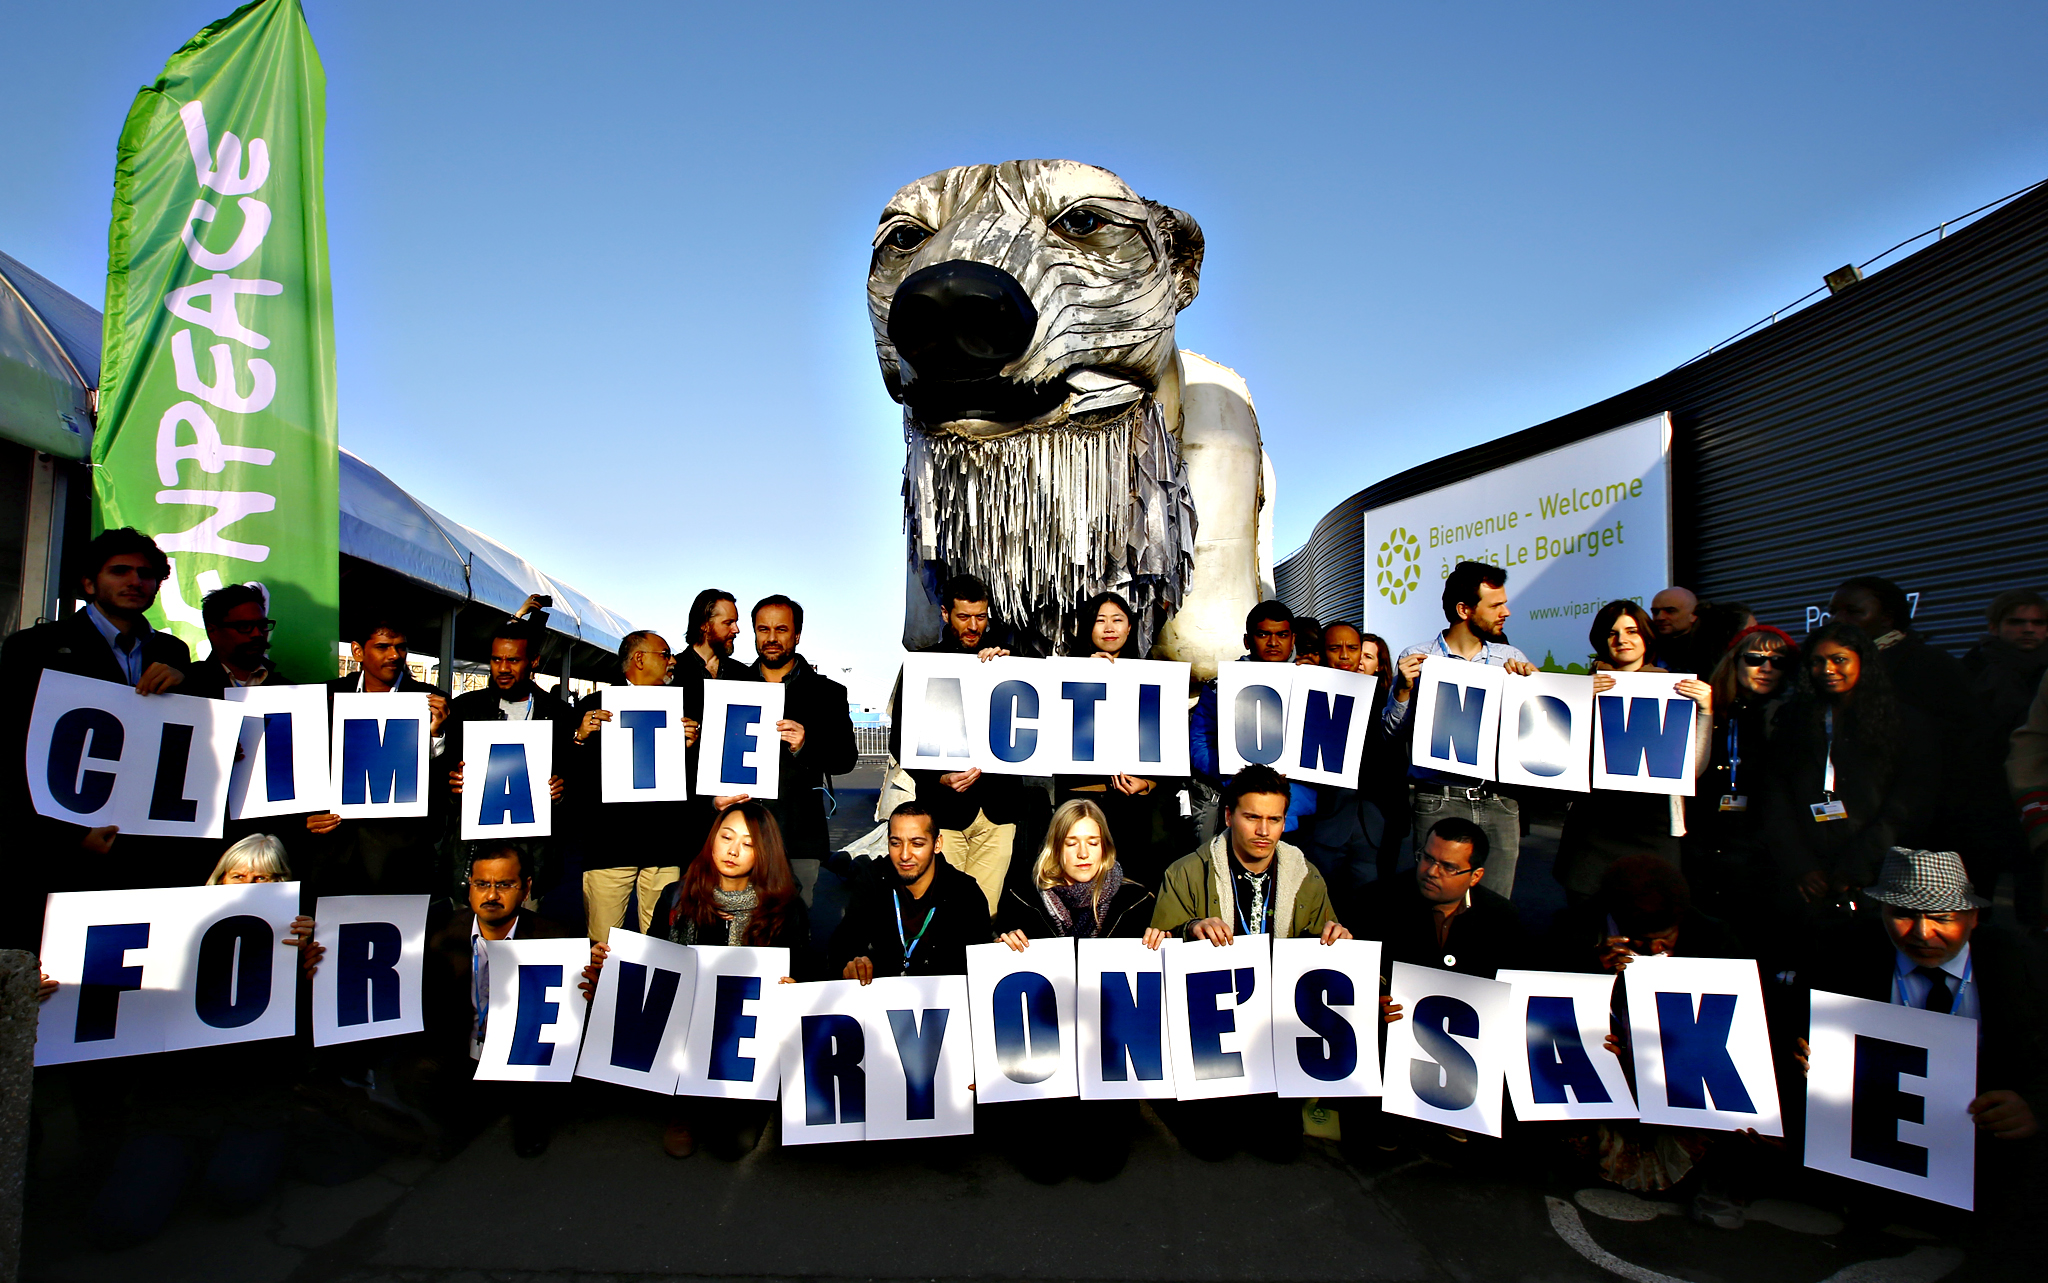 Activists from Greenpeace stage a protest in front of a two-story-high, mechanically operated polar bear called Aurora into the conference venue, to represent everyone hoping in the next 72 hours during the COP21, United Nations Climate Change Conference in Le Bourget, north of Paris, France,  Wednesday, Dec. 9, 2015.